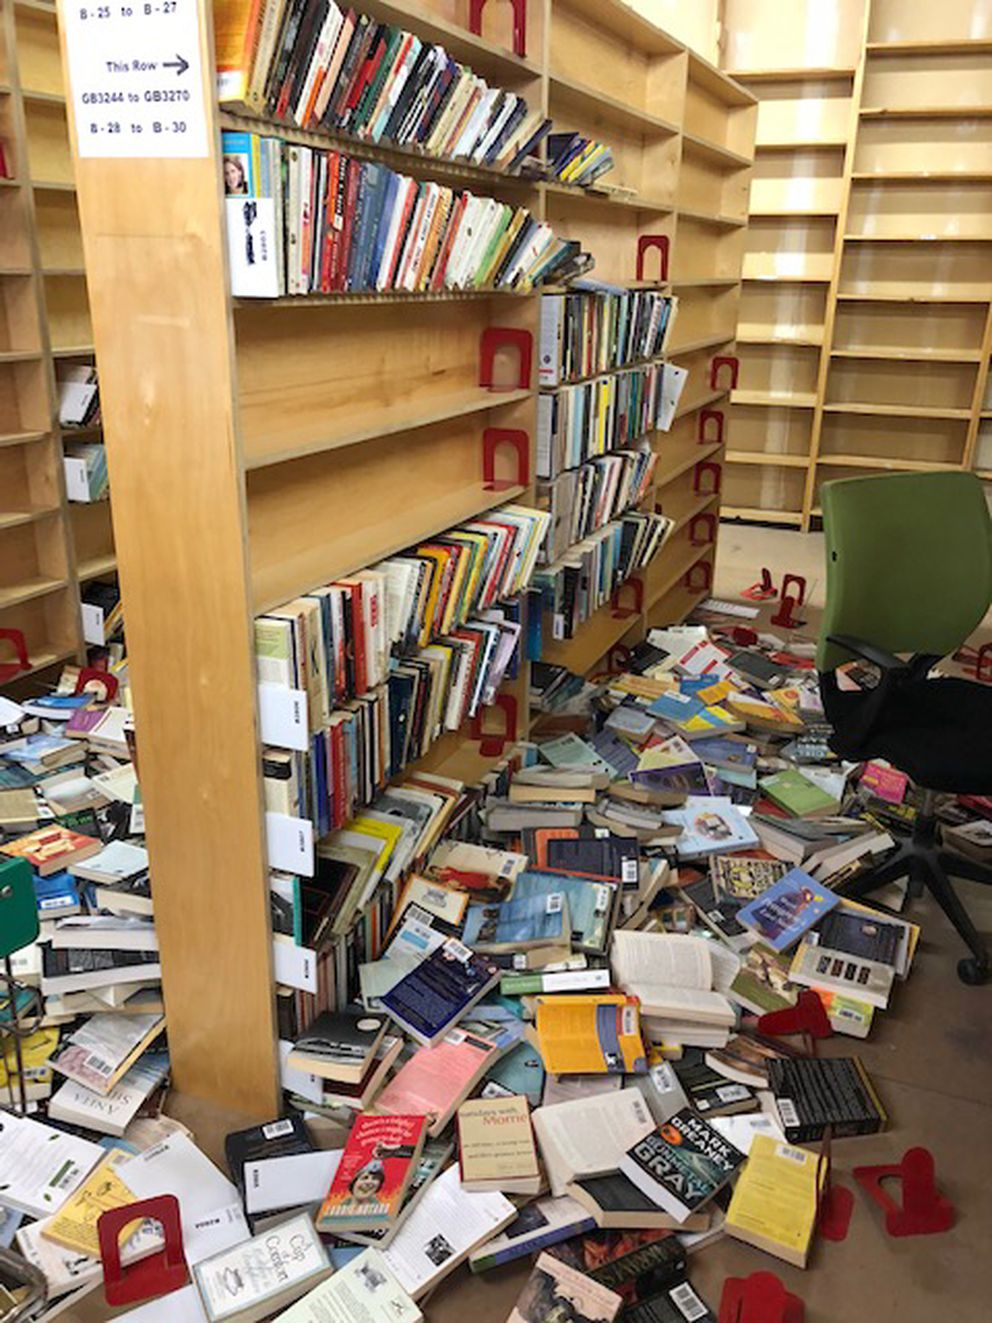 Upstairs warehouse of Title Wave Bookstore, after the earthquake shooks books off shelves, Nov. 30, 2018. (Photo by Elora Libal)